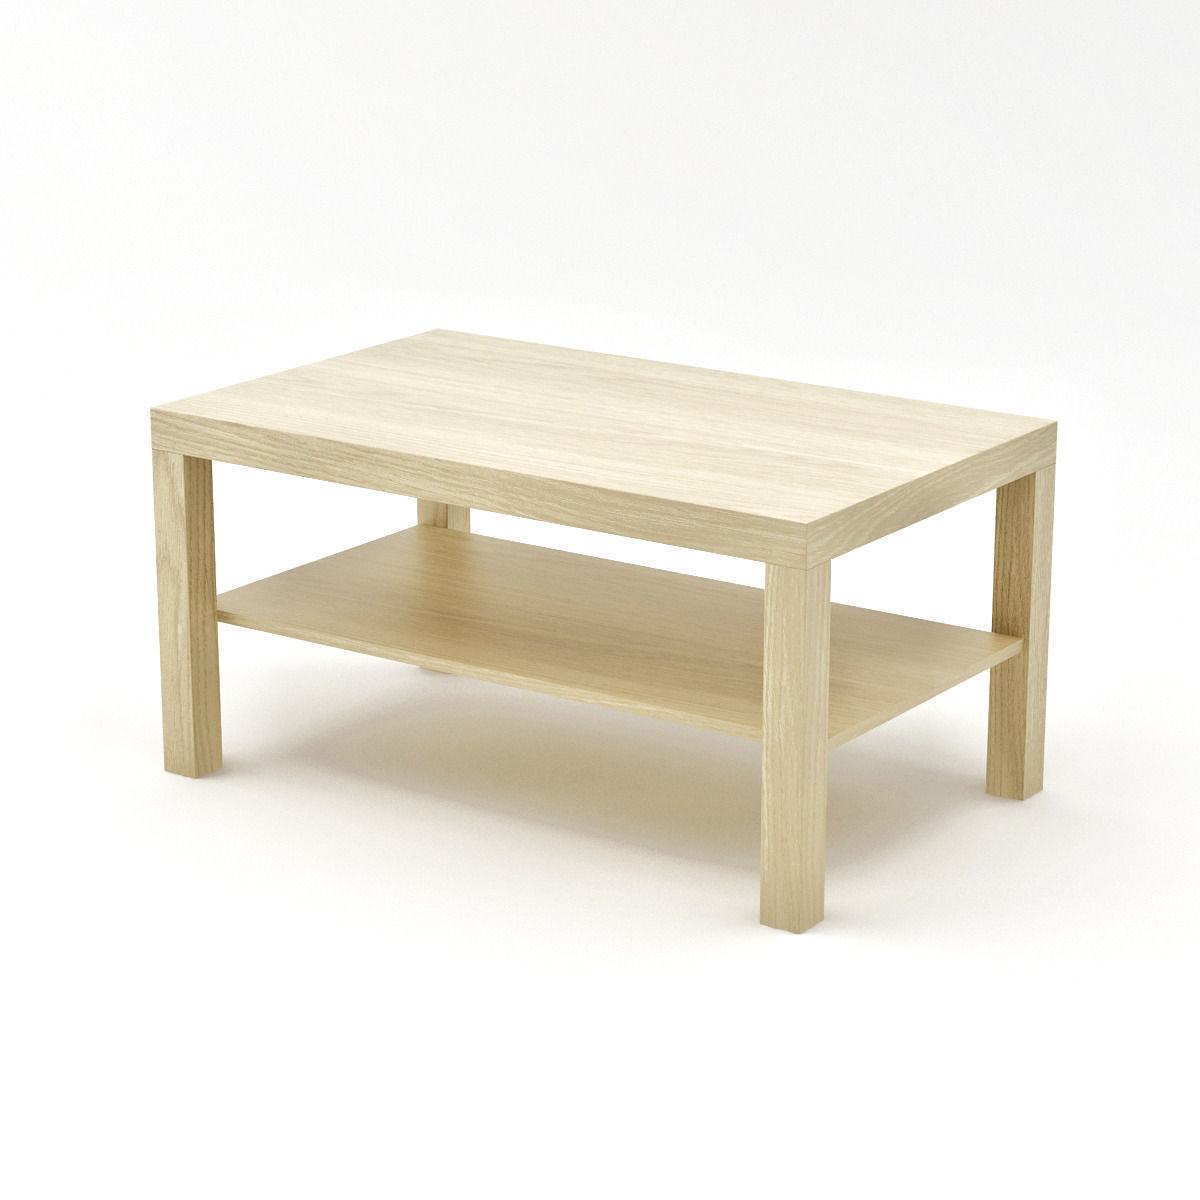 lack sofa table as desk house of stratford upon avon ikea side large 3d model max cgtrader